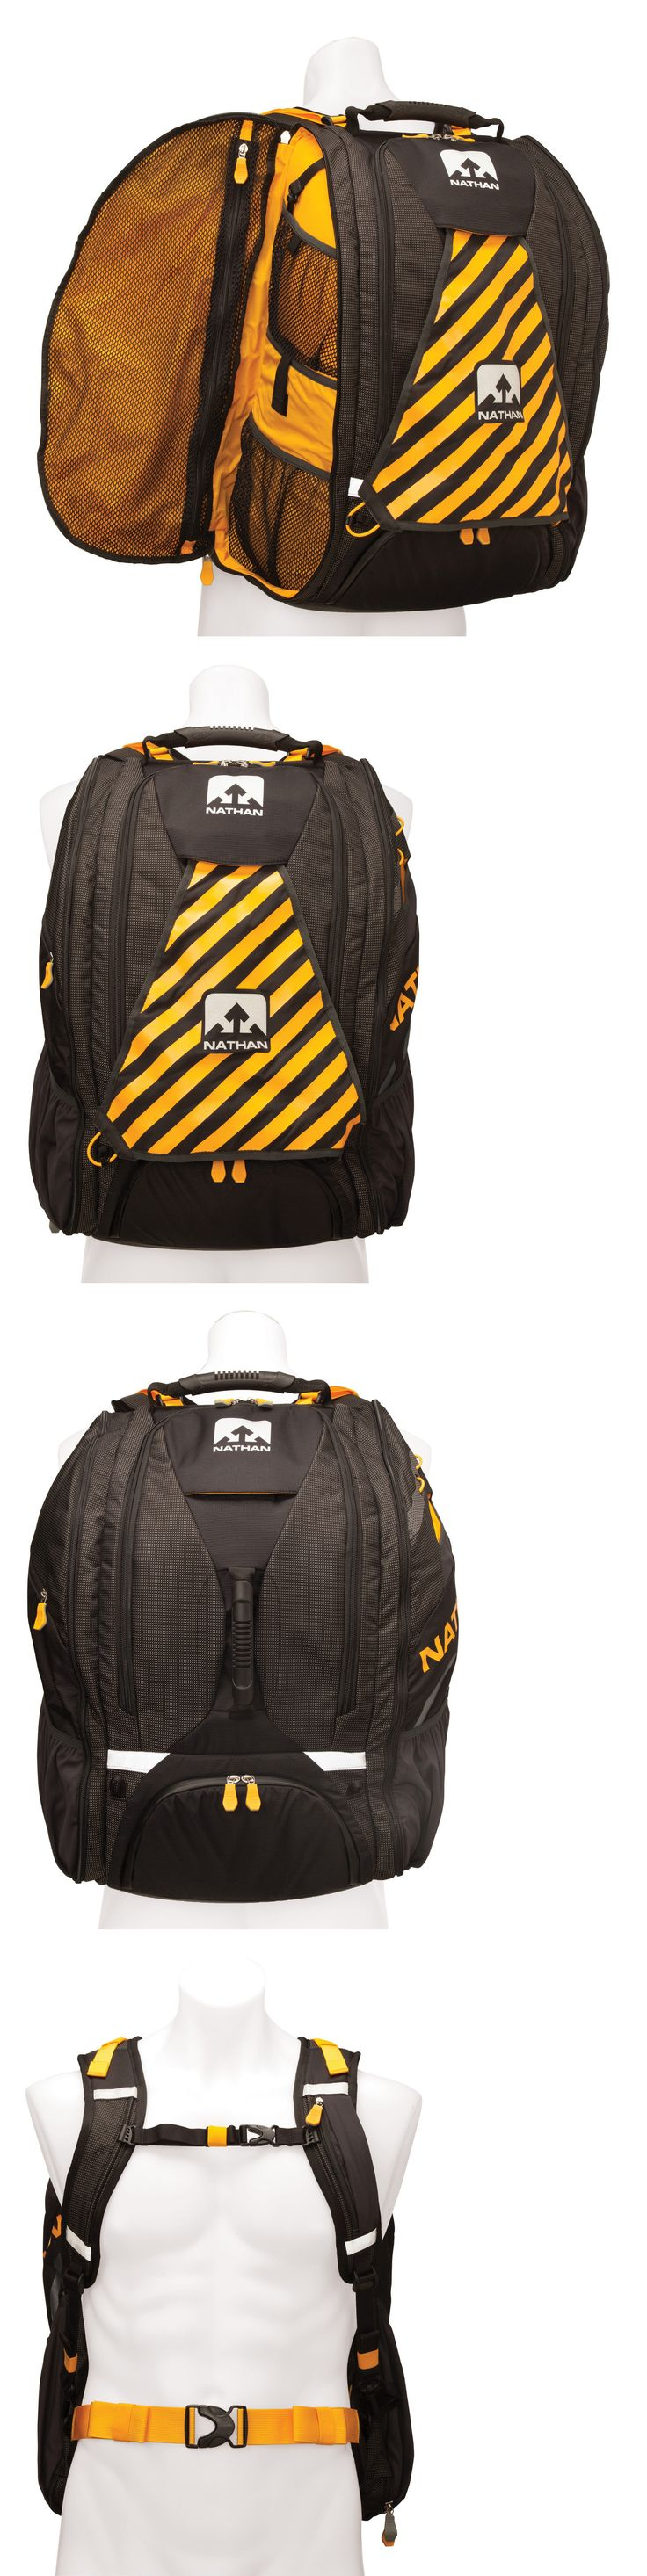 Other Fitness Clothing 158920: Nathan Tri Series Mission Control Tri Bag BUY IT NOW ONLY: $149.95